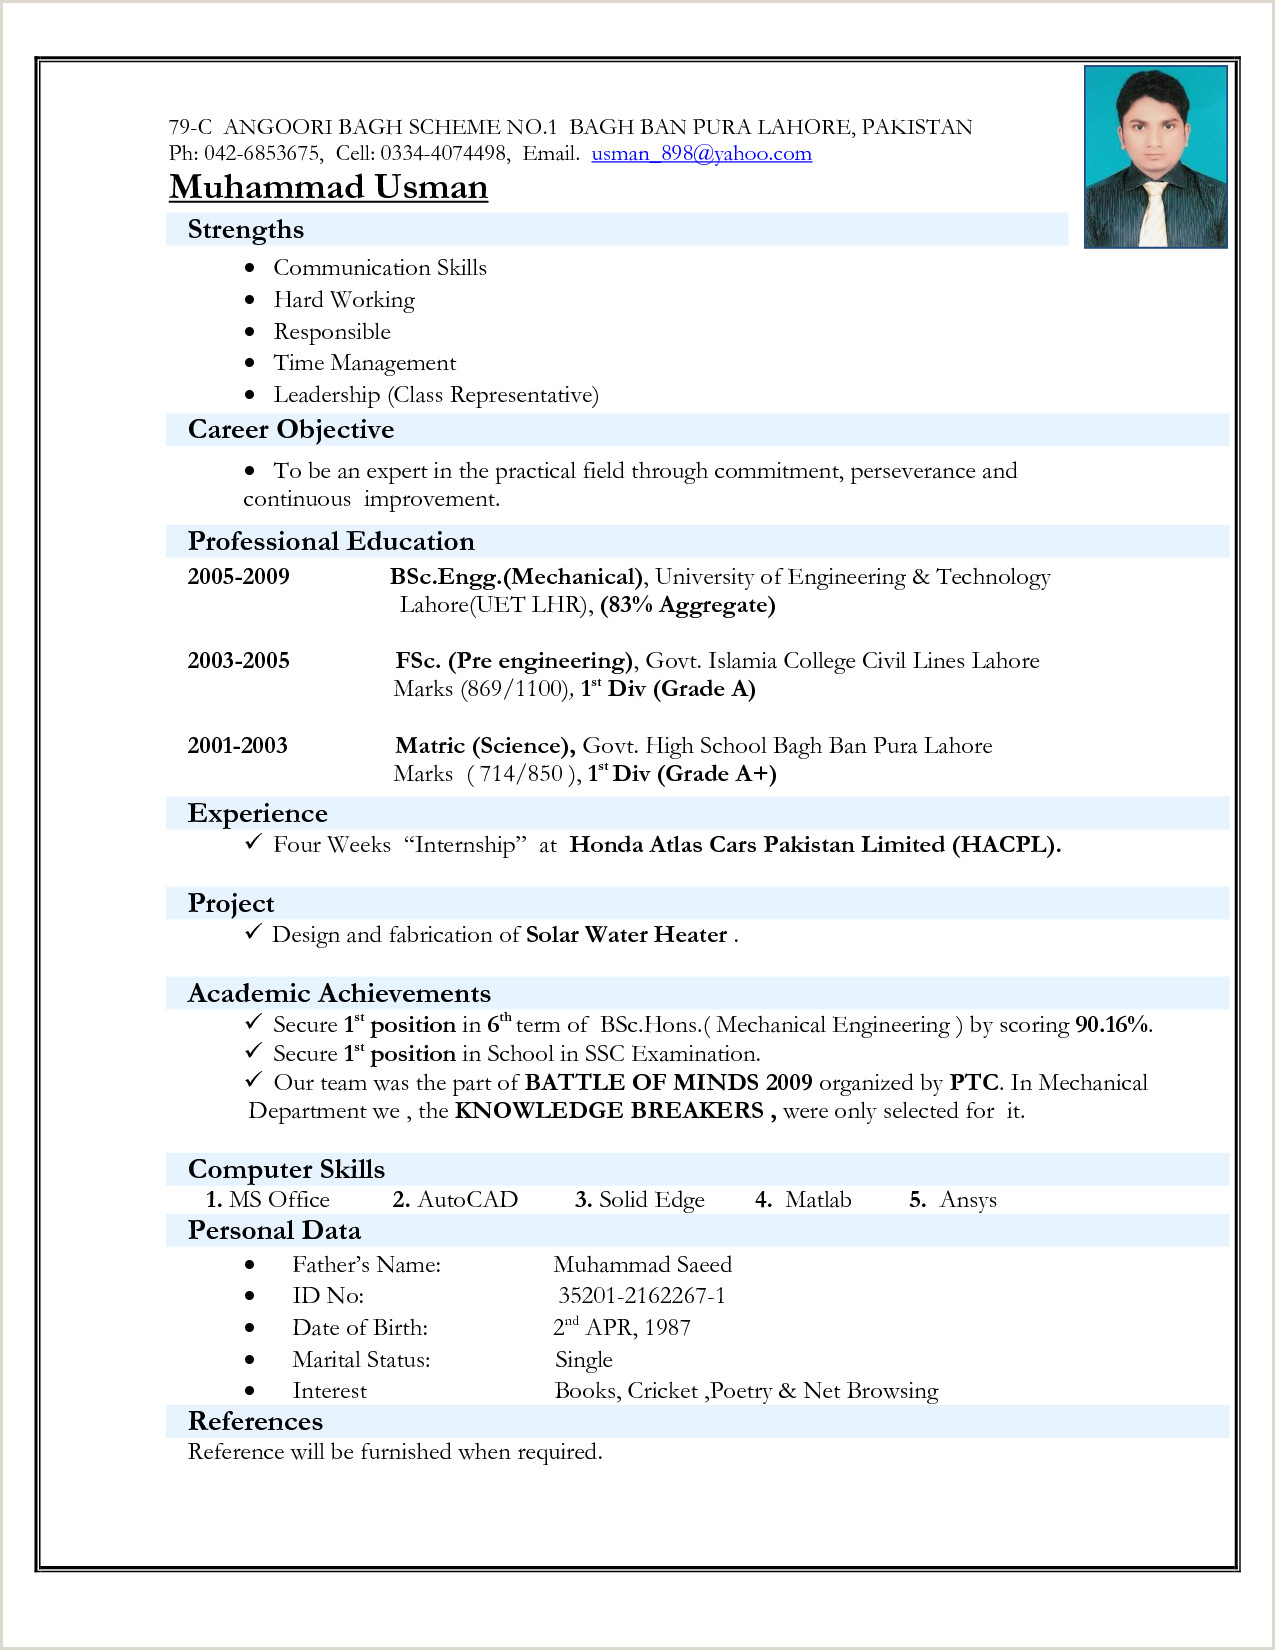 Bcom Fresher Resume Format Download In Ms Word Pin By Aa Abhimanyu On Resumes